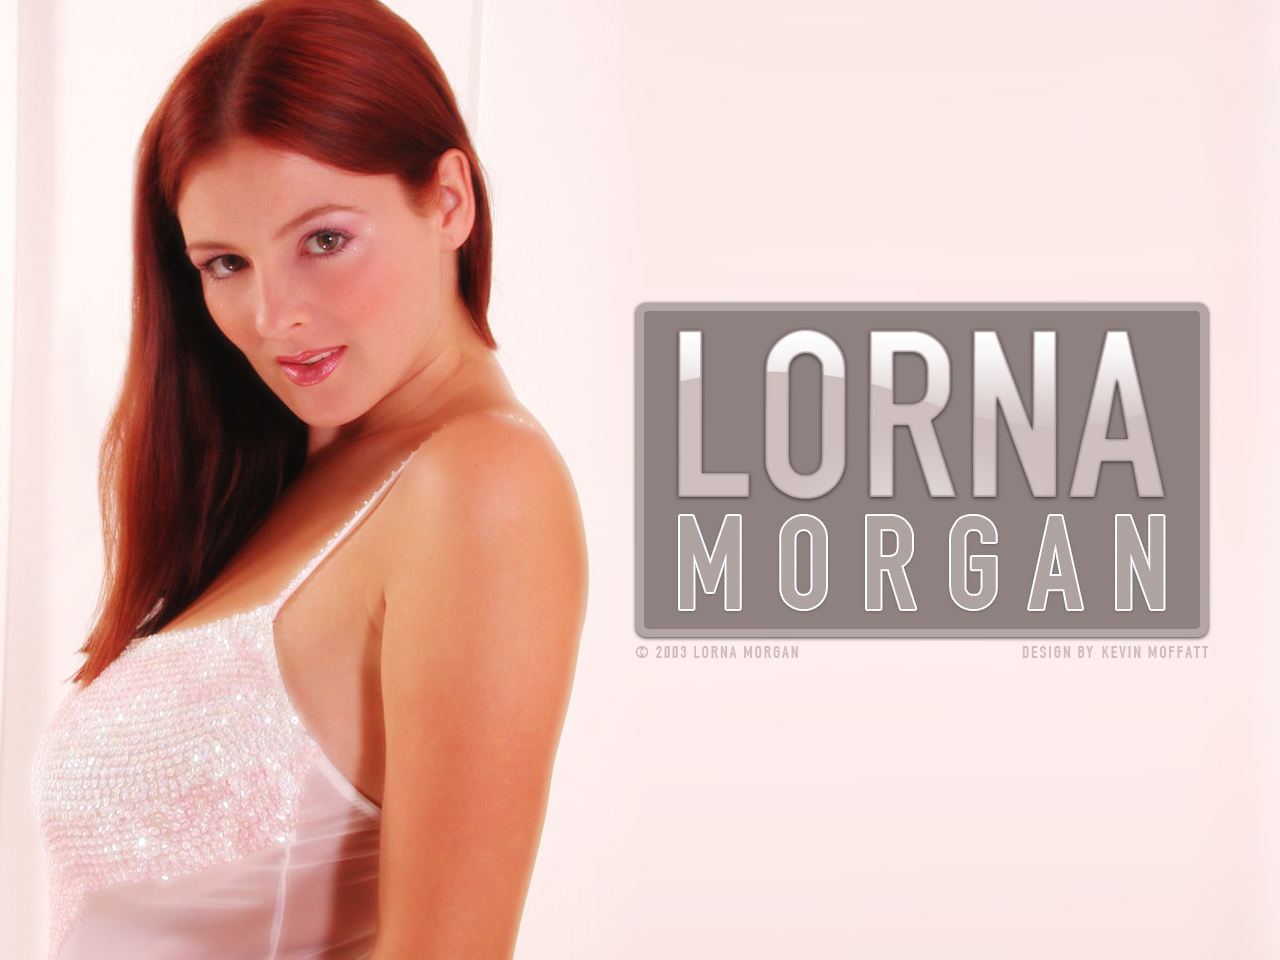 Morgan Lorna 12